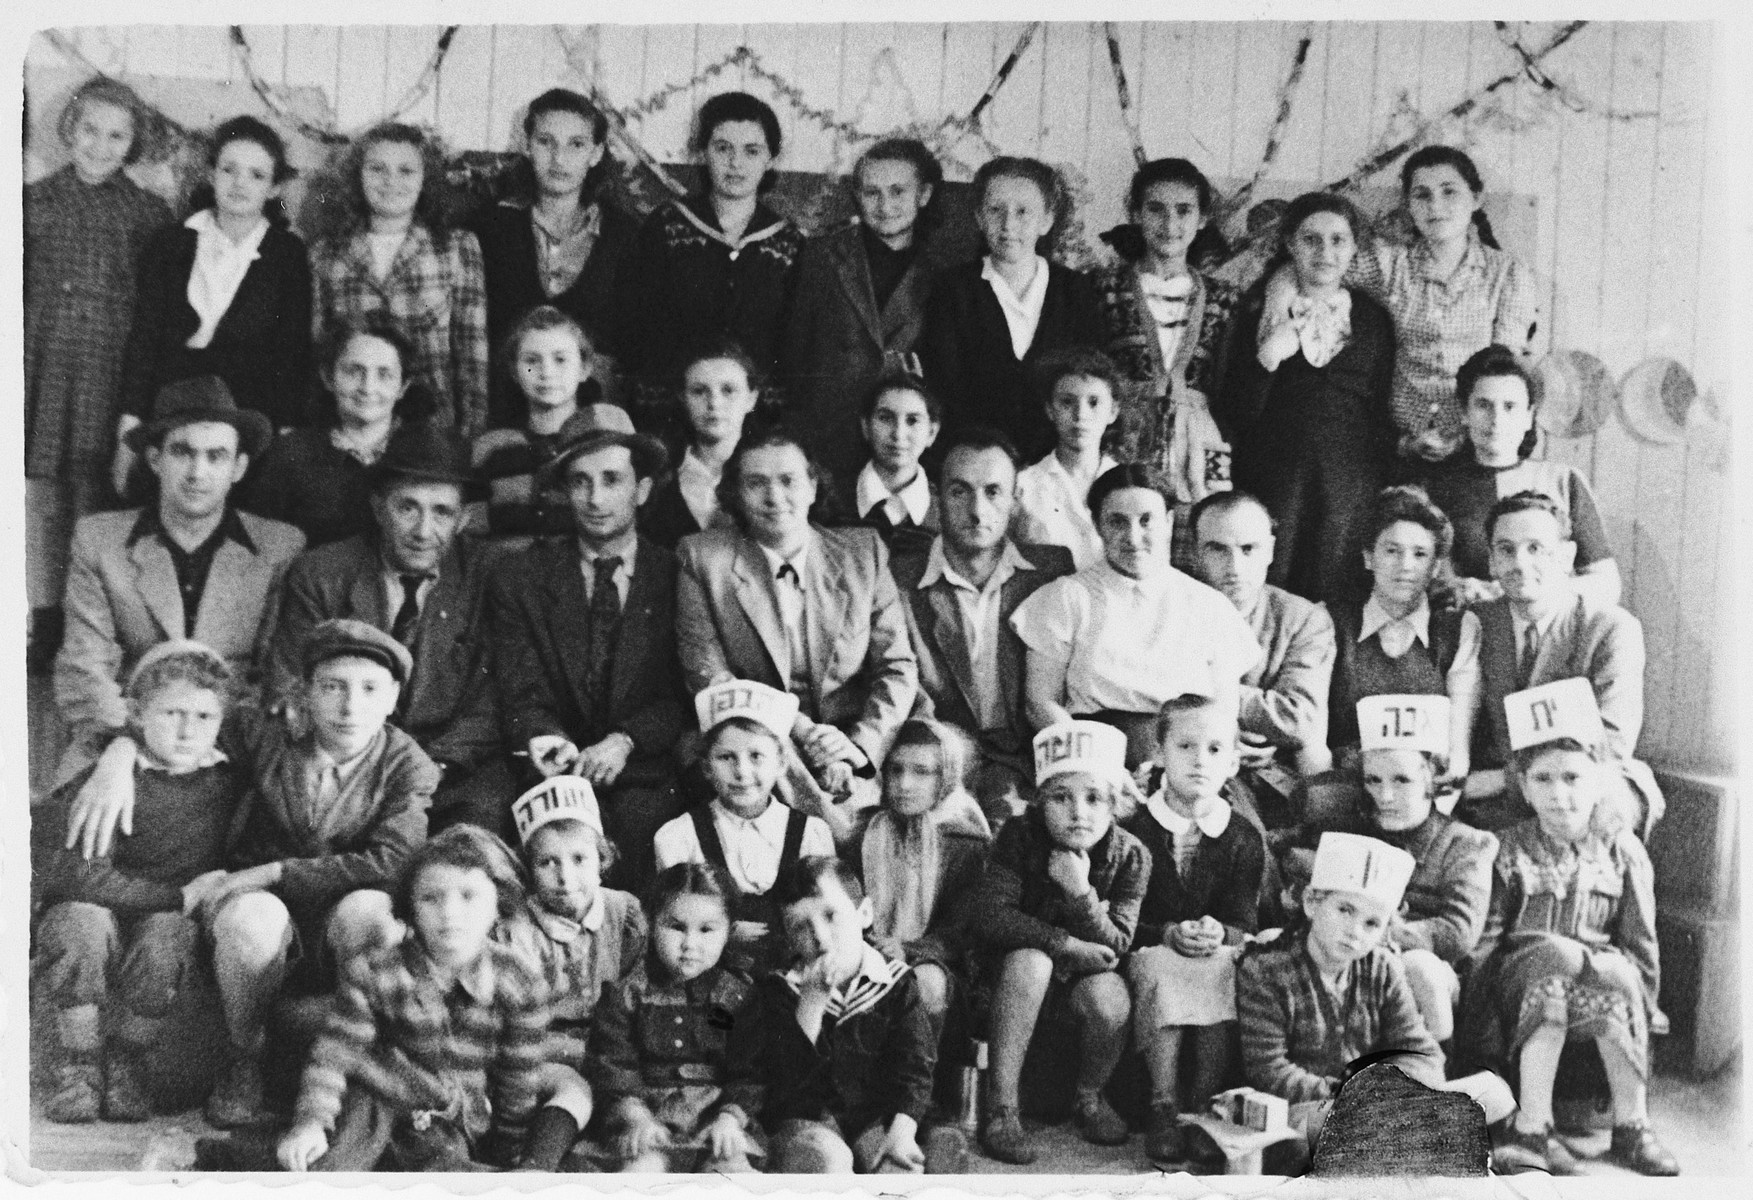 Students and teachers in the Tarbut school in Wels.  The youngest children are wearing crowns with Hebrew words written on them.